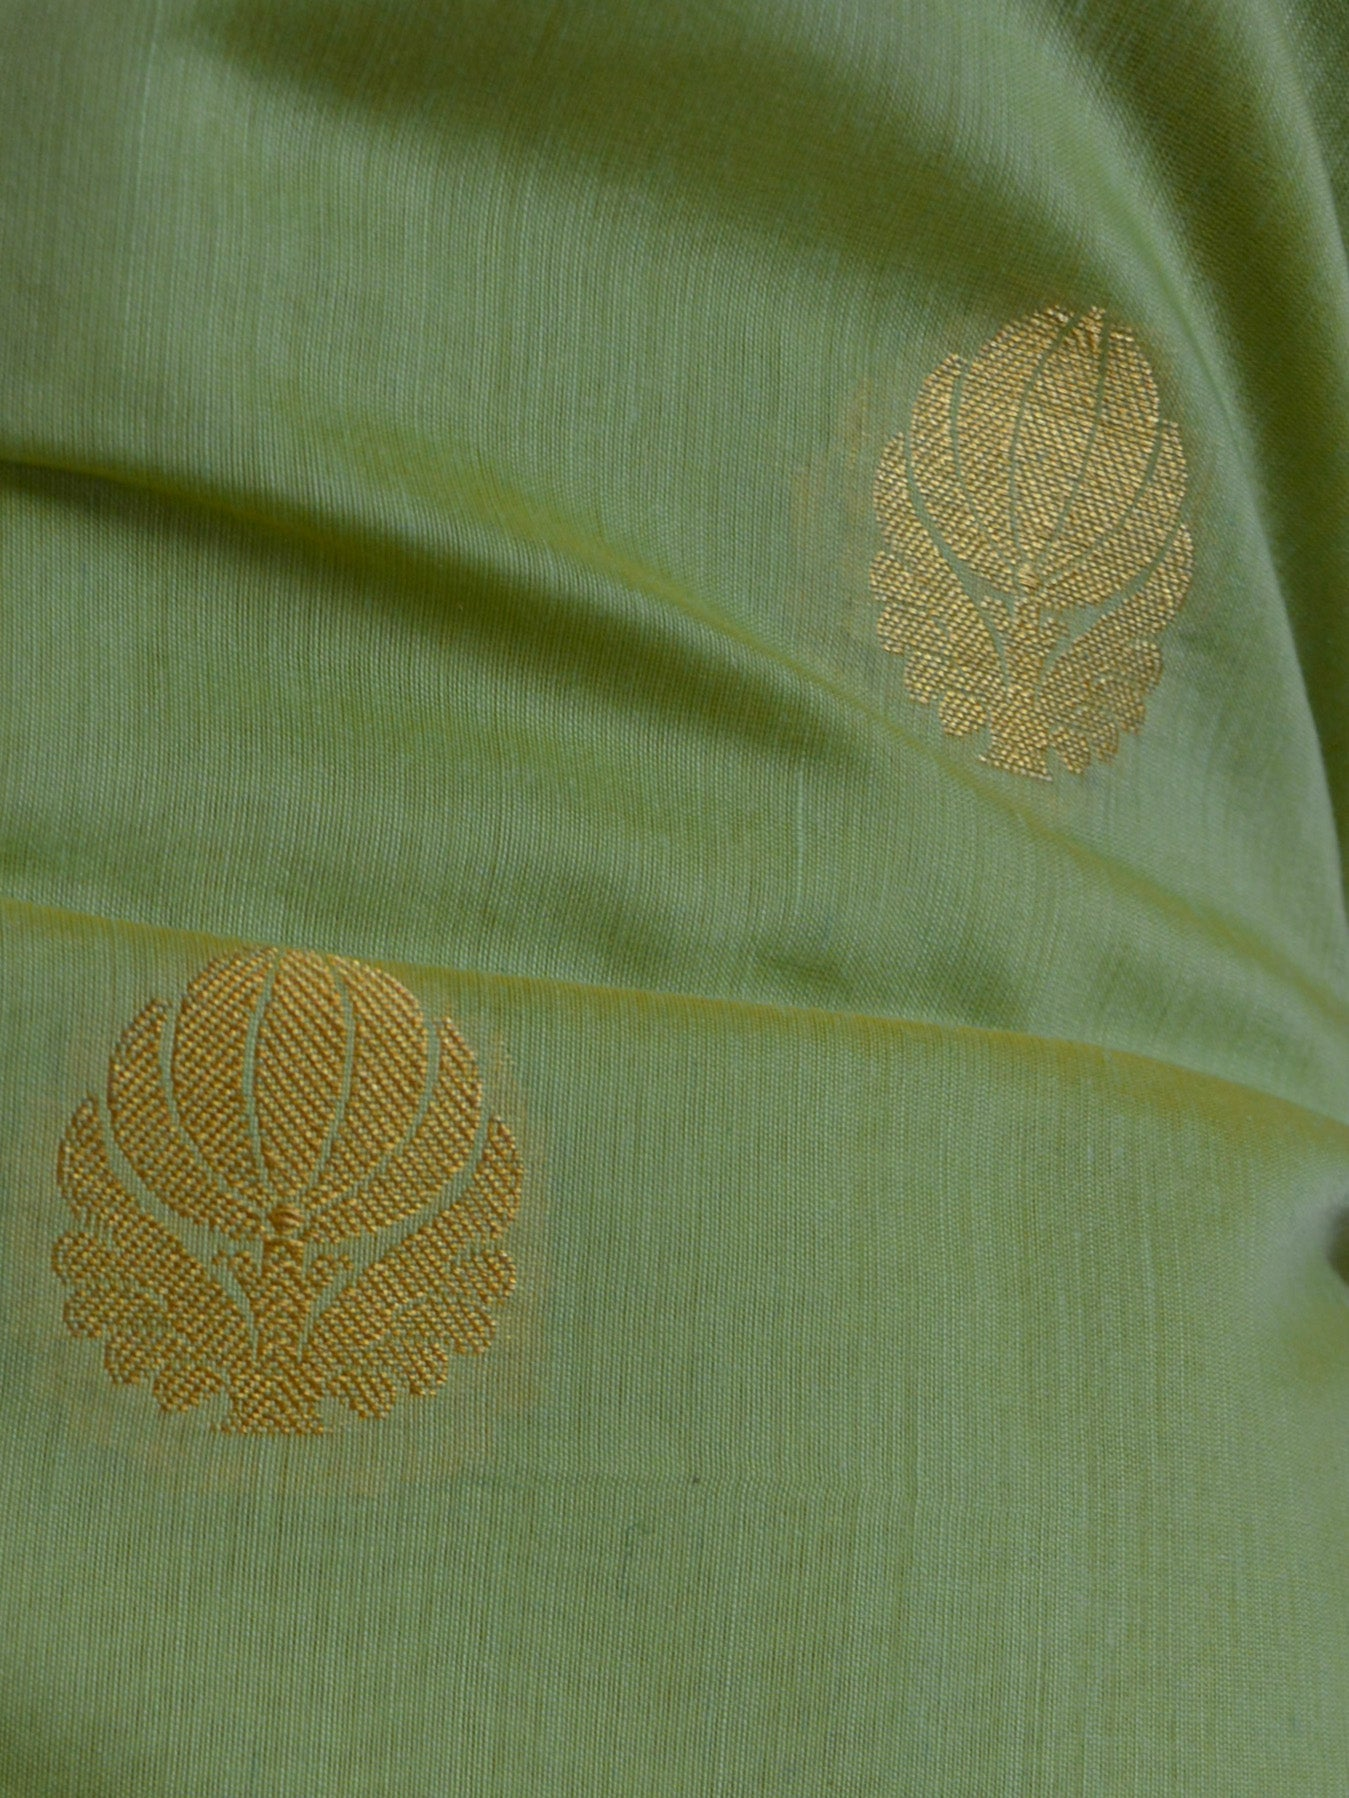 Banarasee Chanderi Cotton Salwar Kameez Fabric With Zari Dupatta-Pastel Green